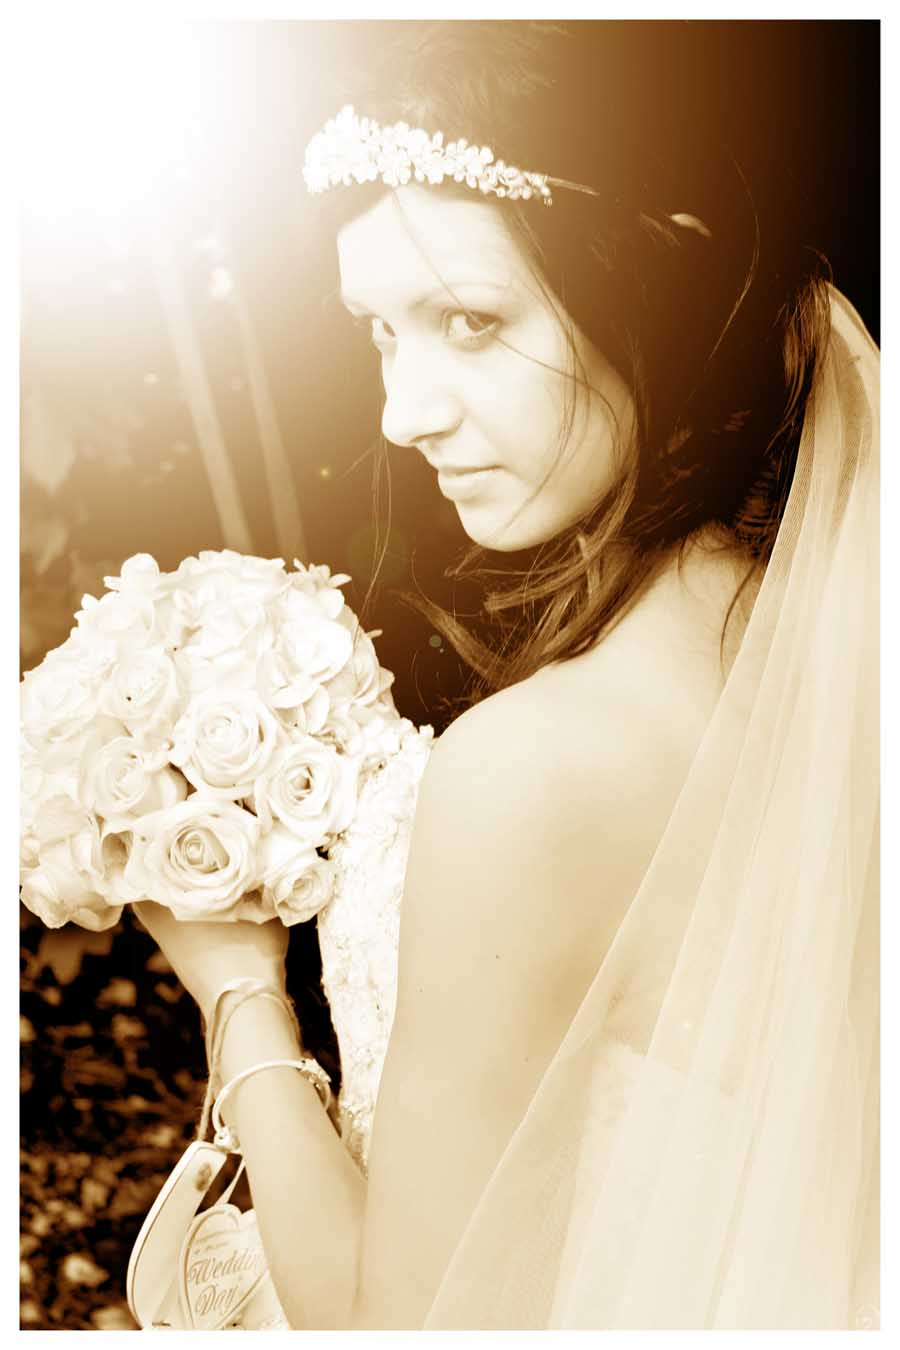 BRIDE Photos by Simeon Thaw copyright 2014 (90).jpg